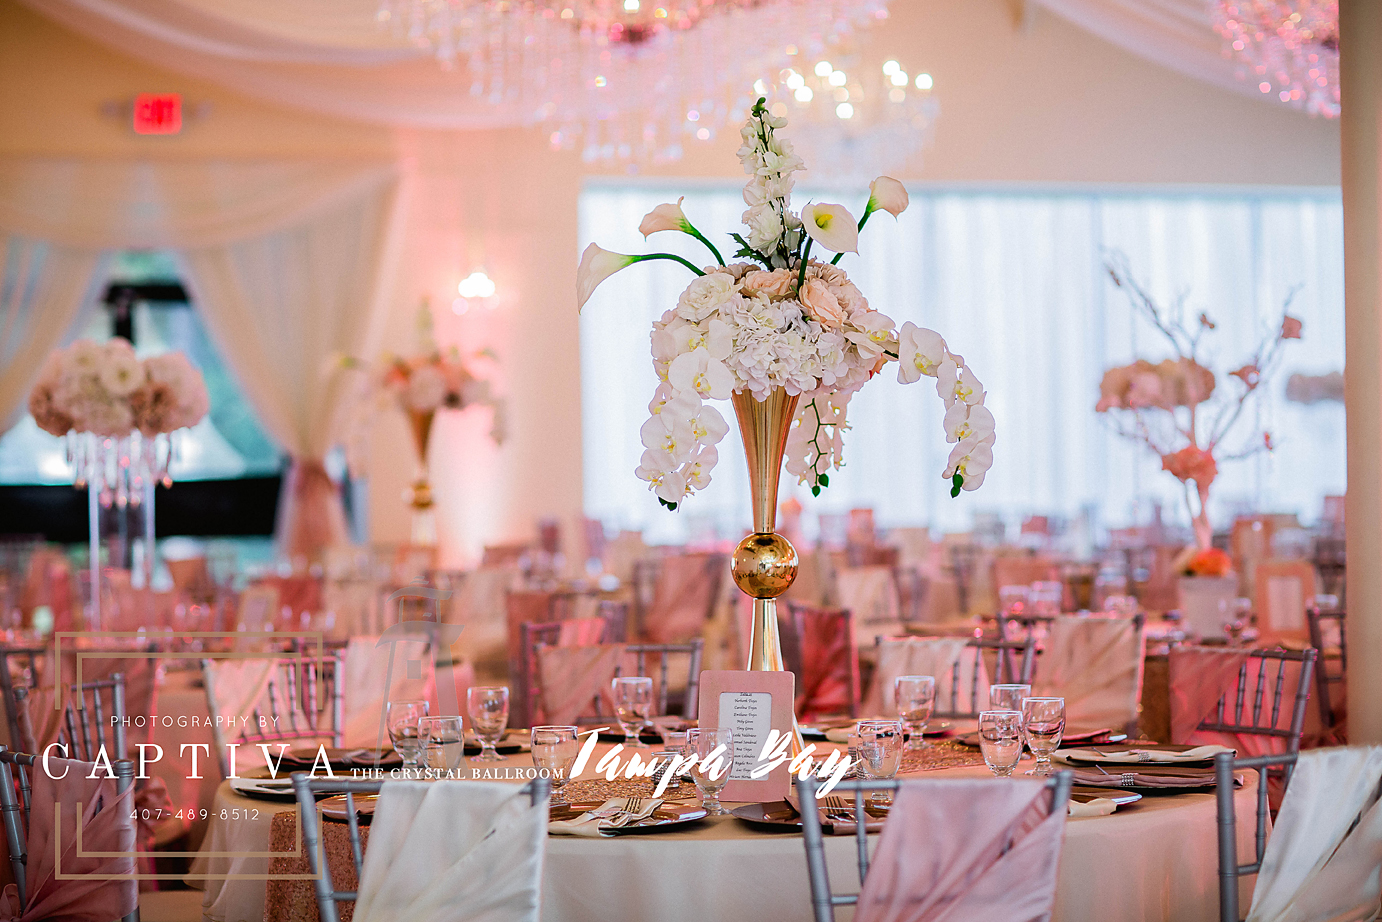 Event Venue And Design Services Book Today The Crystal Ballroom